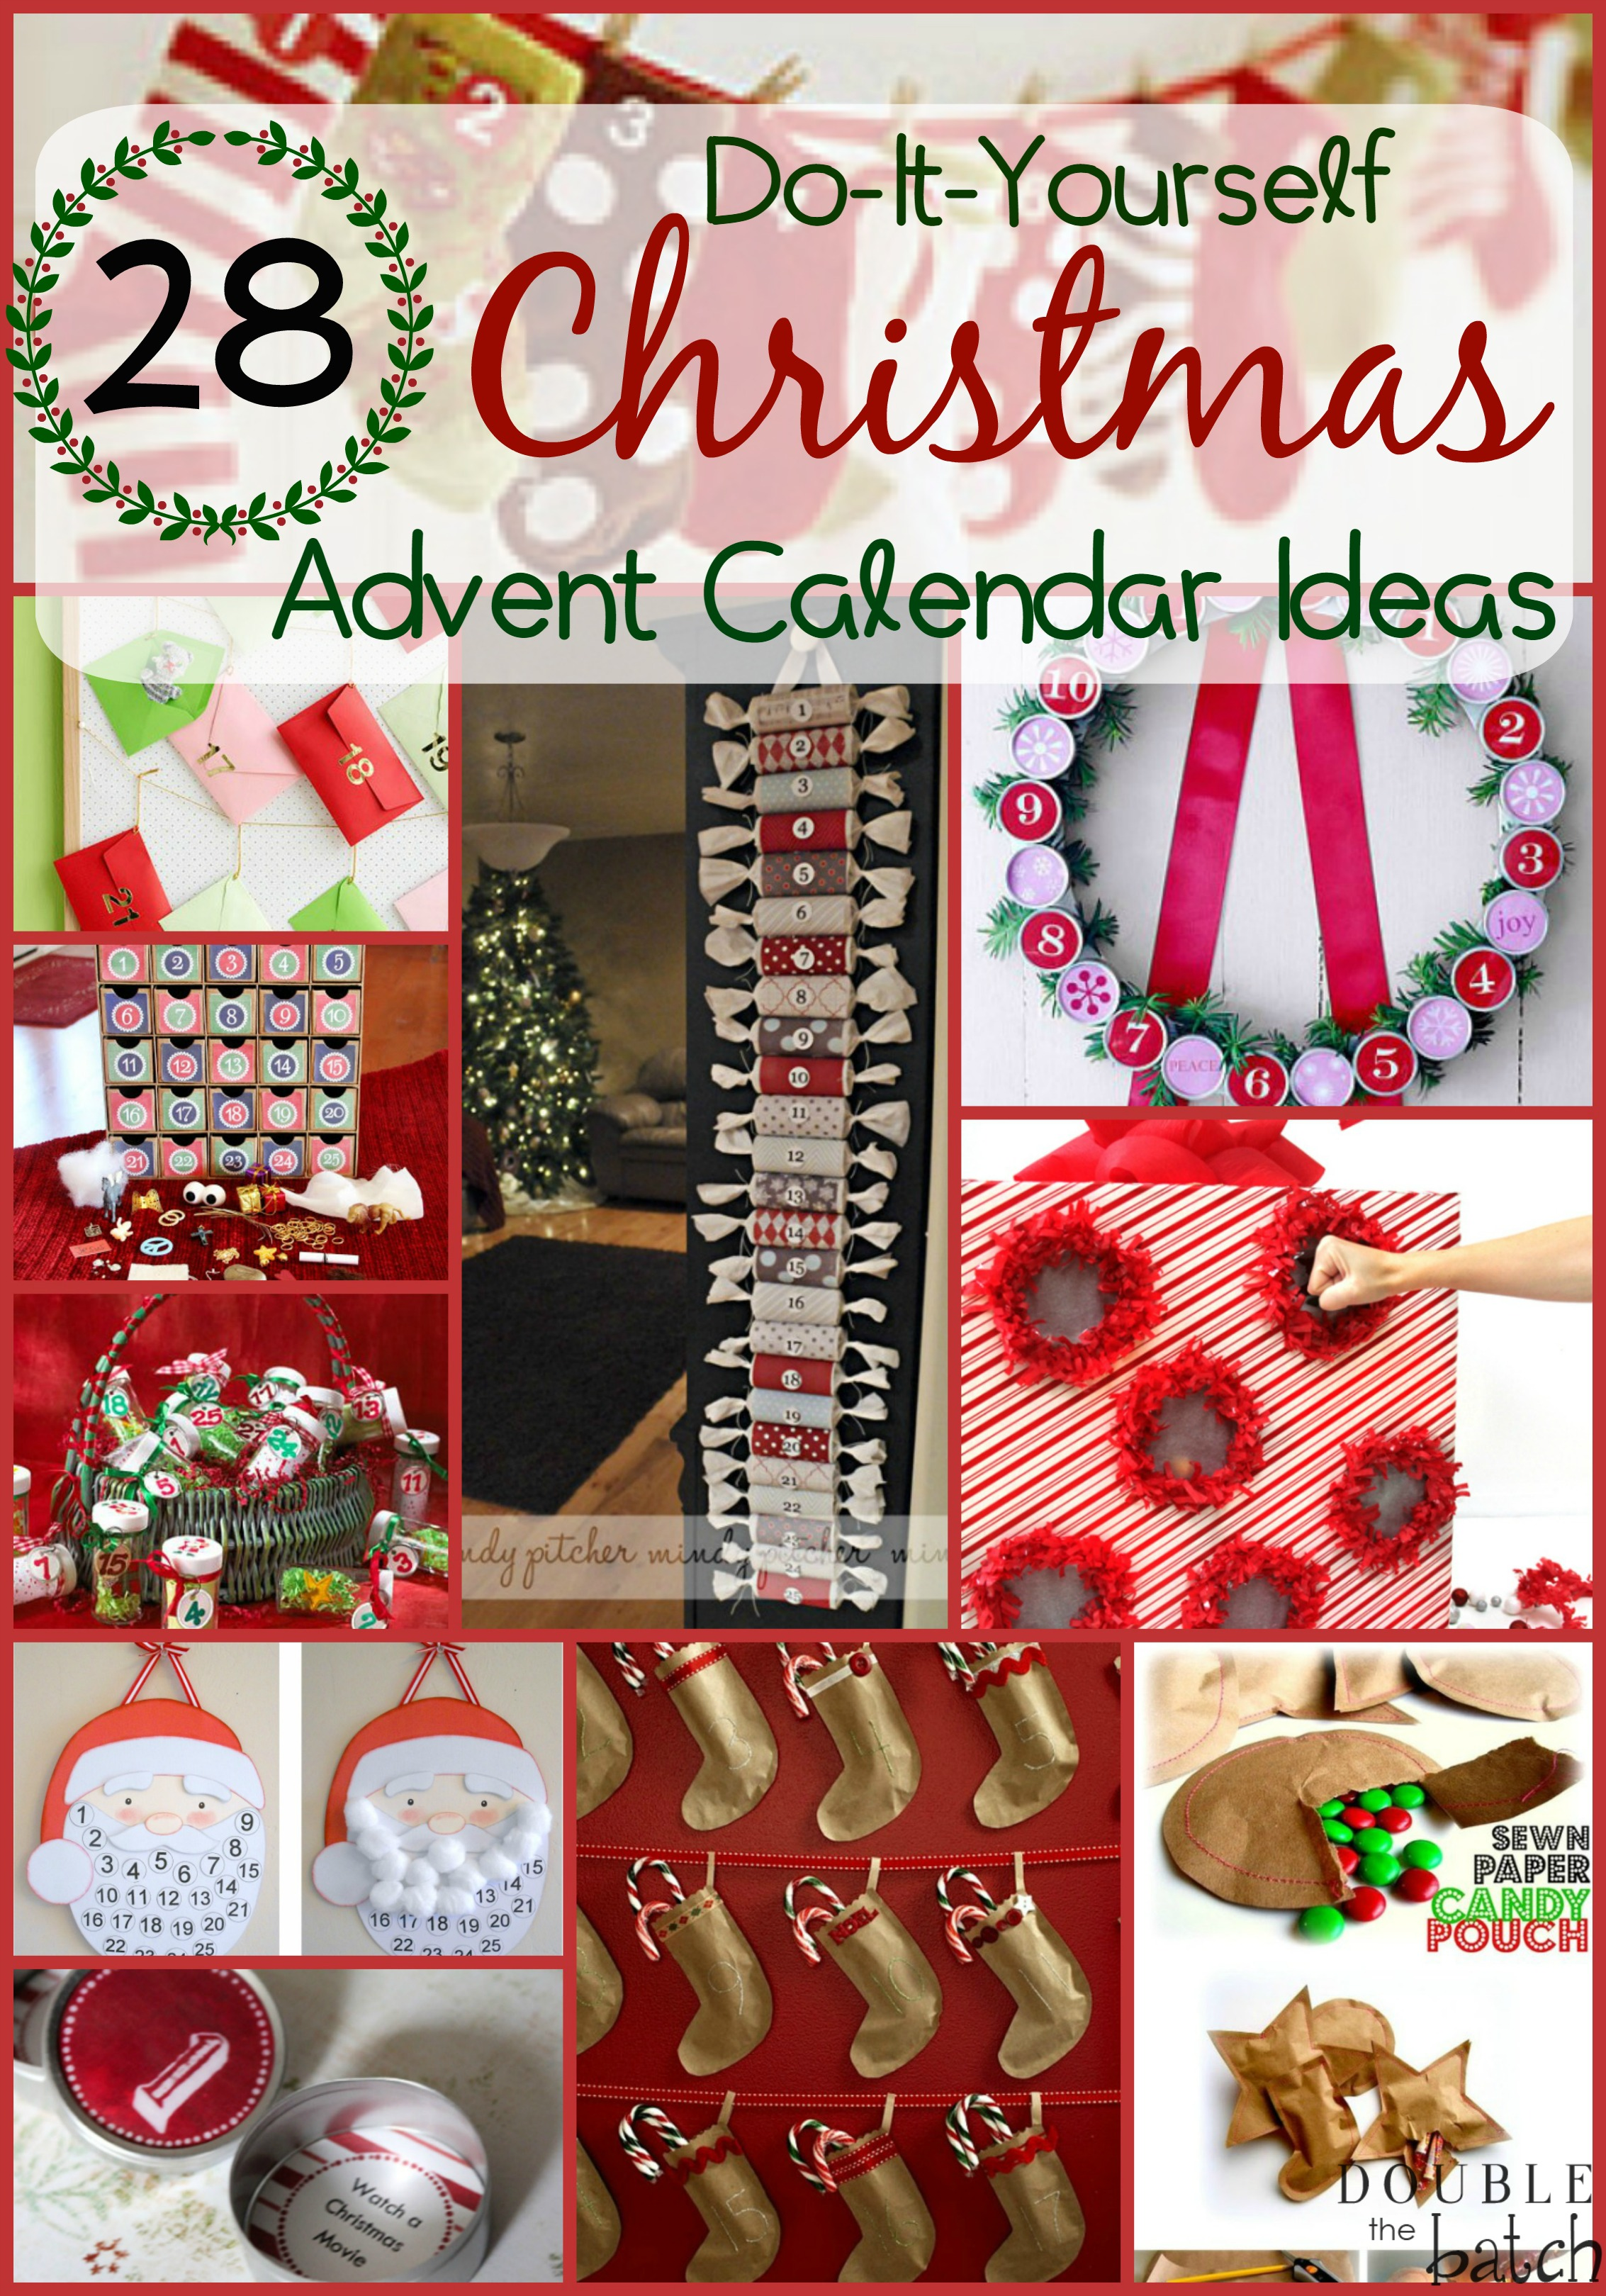 Calendar Ideas Diy : Diy christmas advent calendar ideas